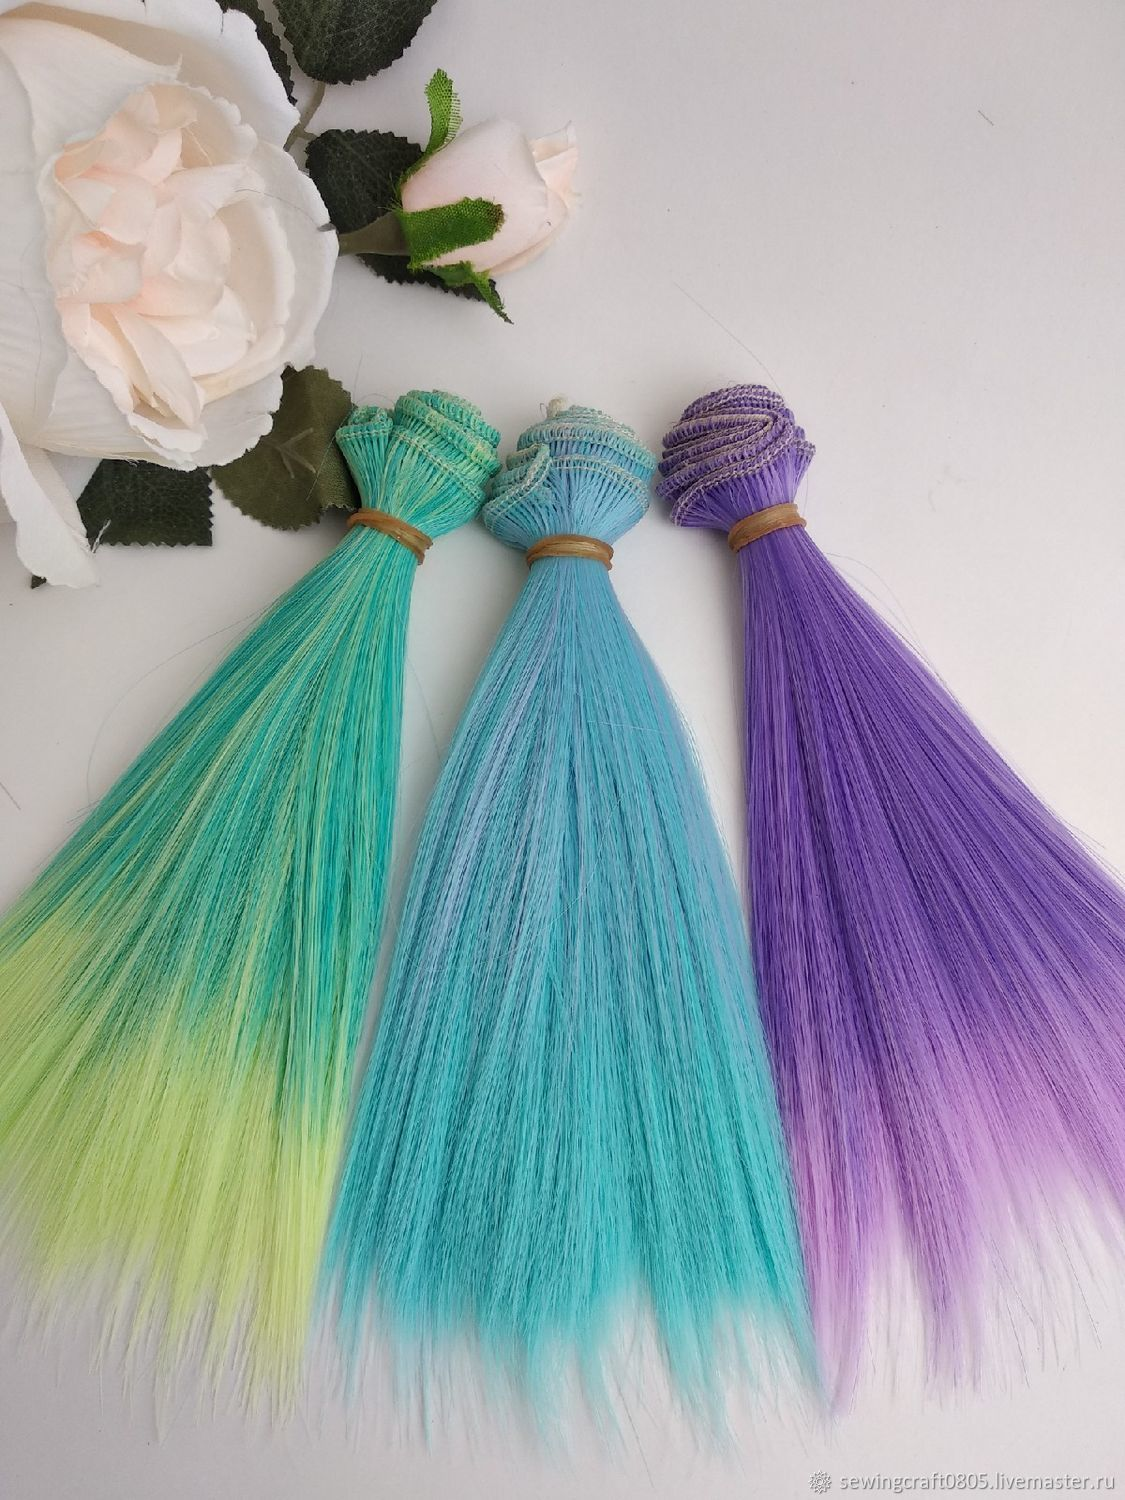 Straight hair pieces colored 15 cm, Doll hair, St. Petersburg,  Фото №1